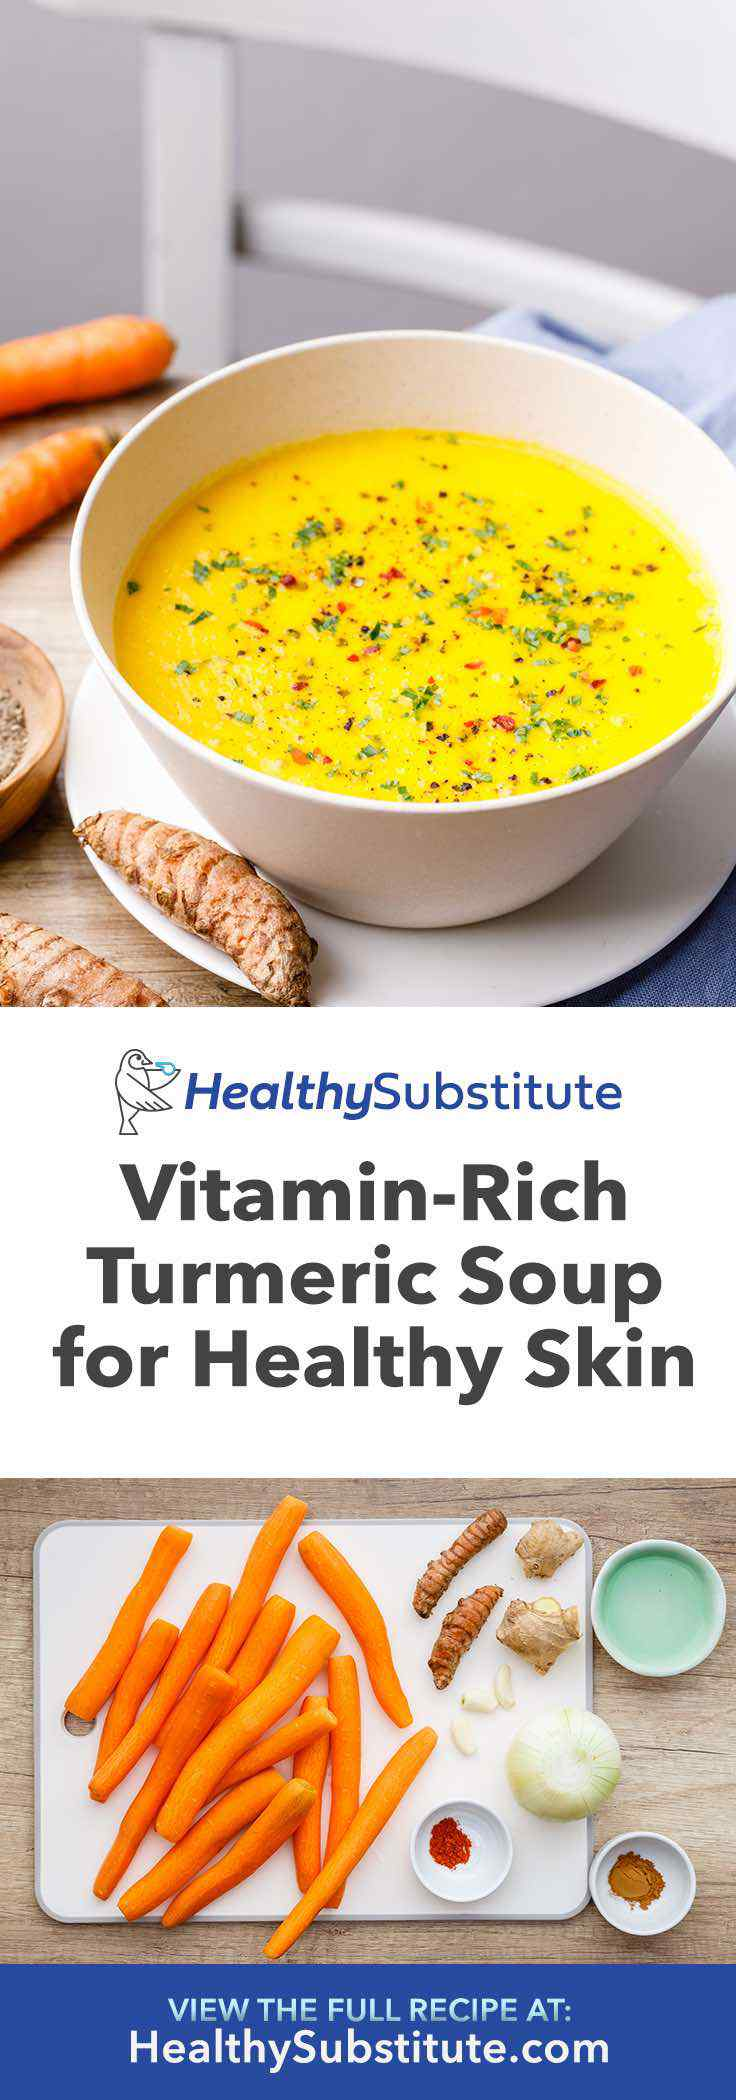 Make this turmeric carrot soup for healthy skin.